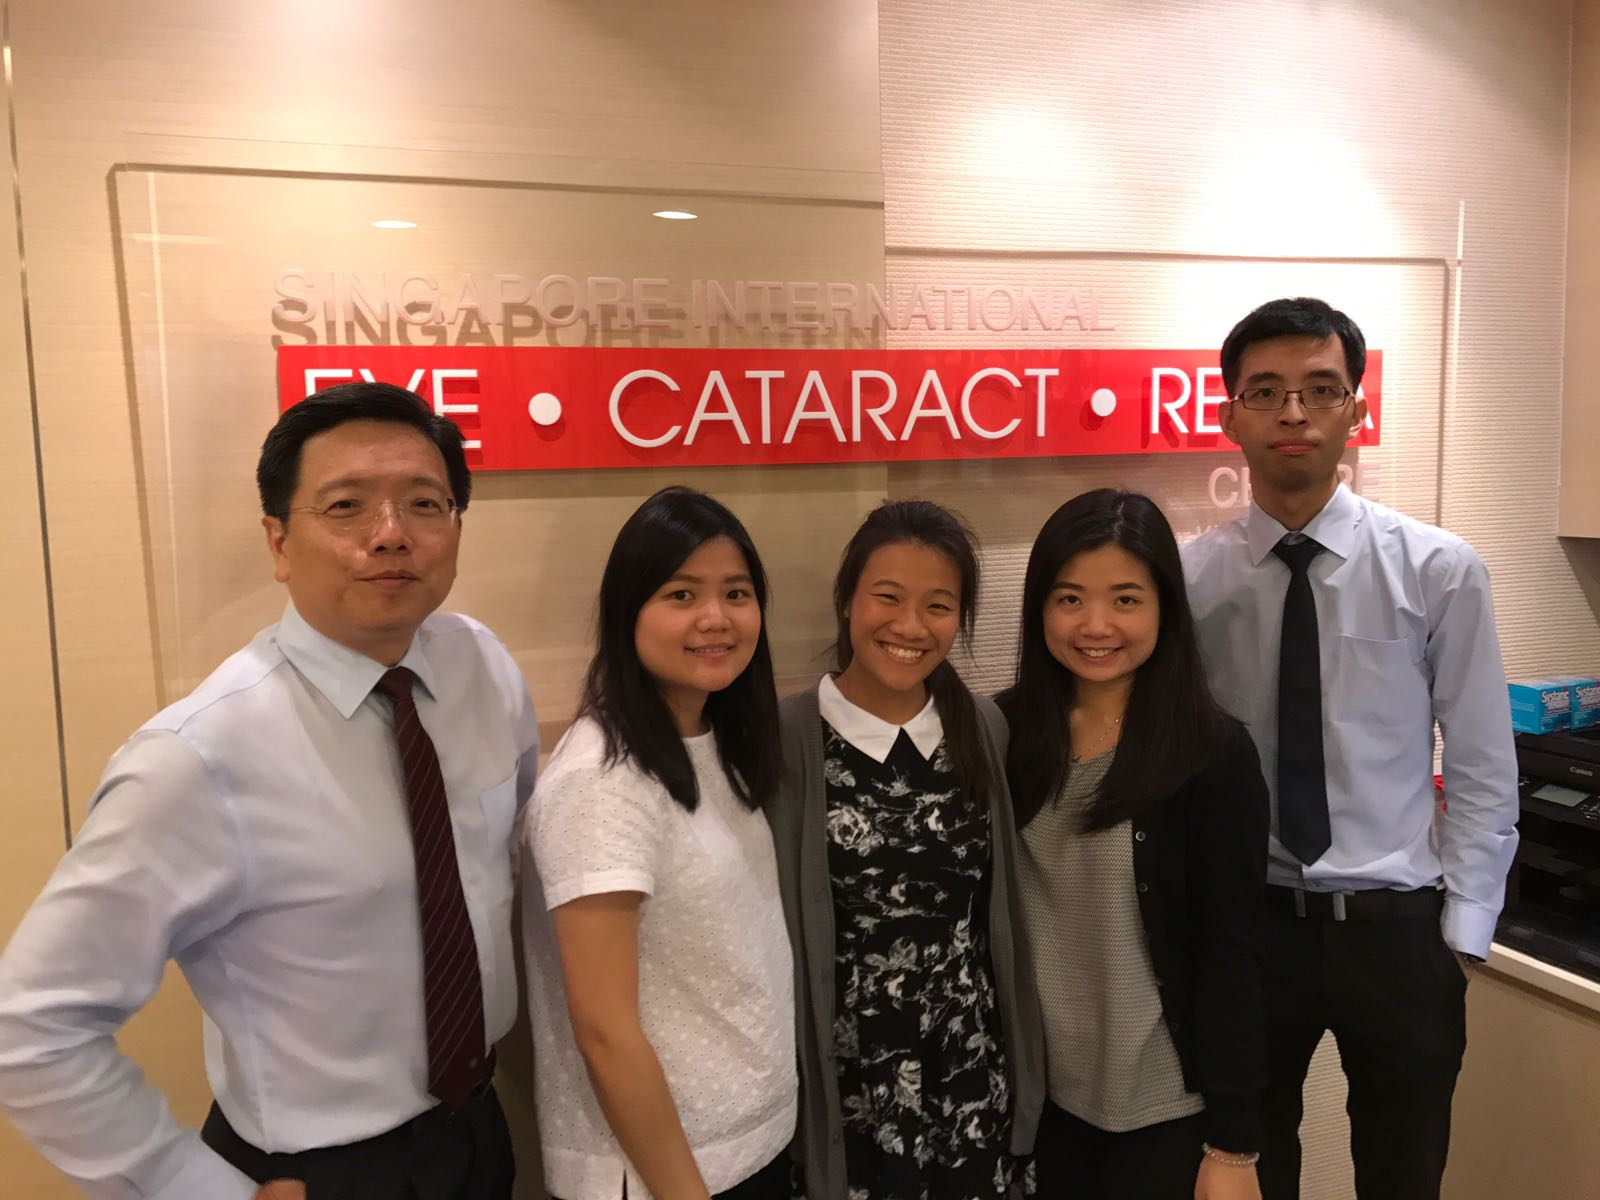 Ms Daphne Chiew (centre) with (L-R) Dr Au Eong Kah Guan, Olga Aprianti Lee, May Wong Ek Su and Lim Yun Chong in Singapore International Eye Cataract Retina Centre at Mount Elizabeth Medical Centre.